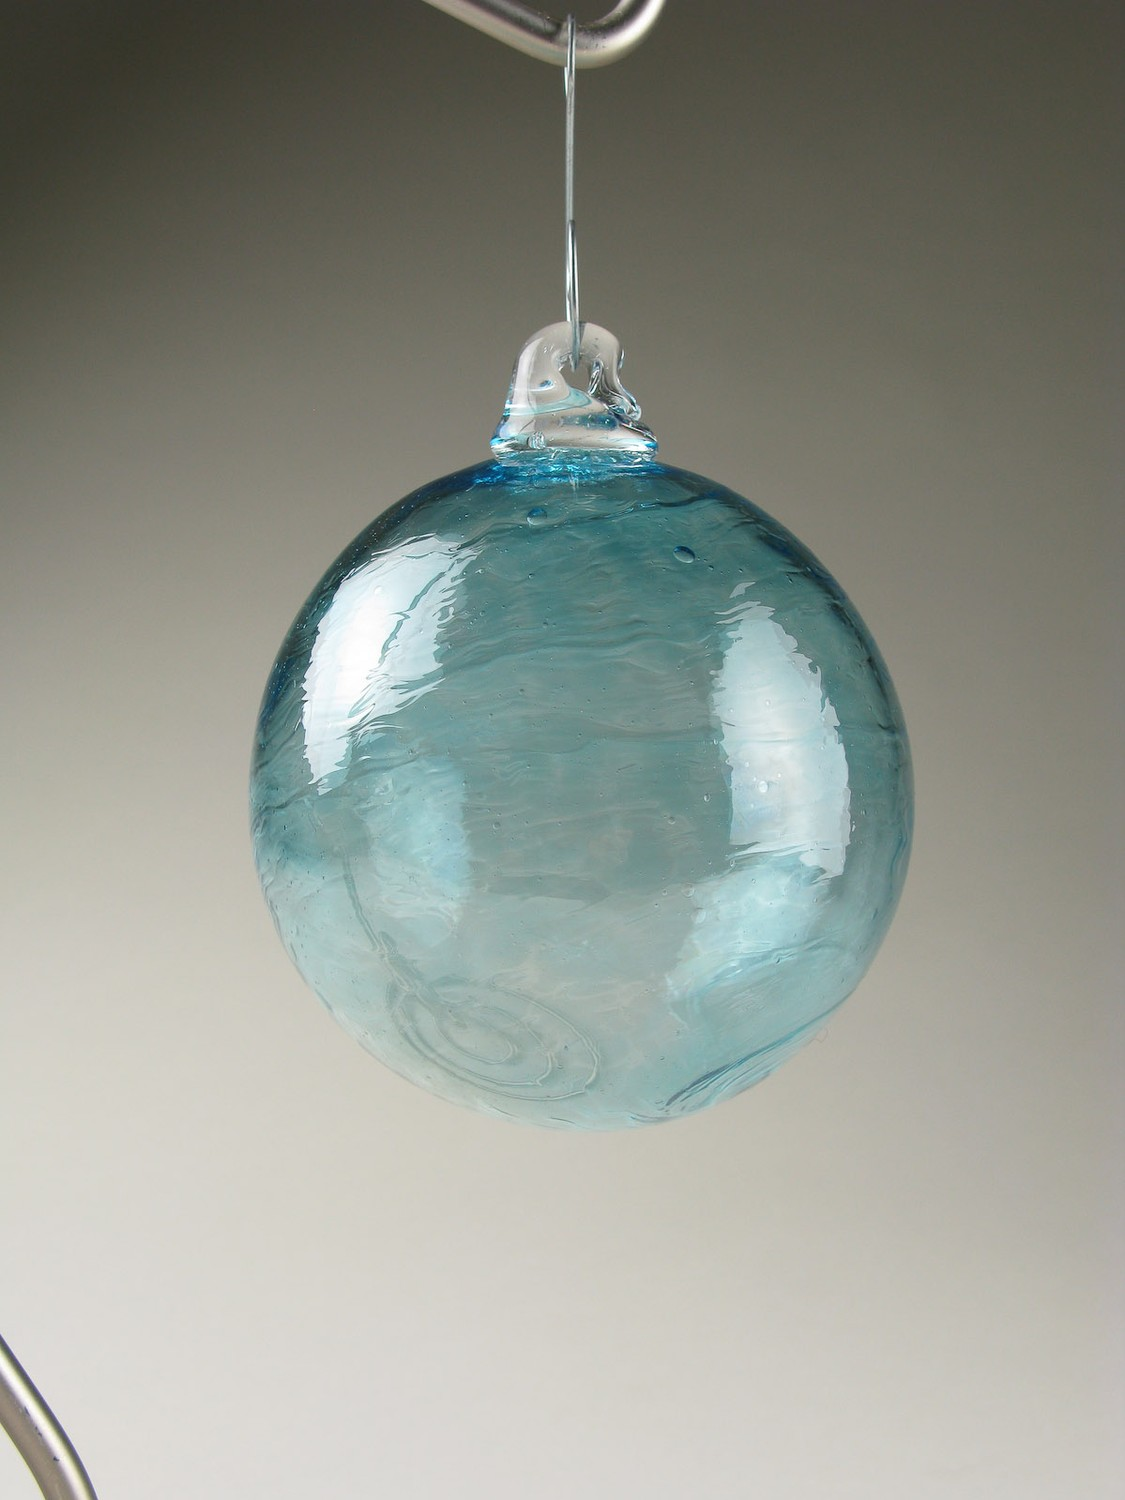 Handmade glass christmas ornaments - As Christmas Nears I Ve Become Obsessed With Vintage And Handmade Christmas Ornaments A Quick Search On Etsy Pulled Up Some Terrific Finds